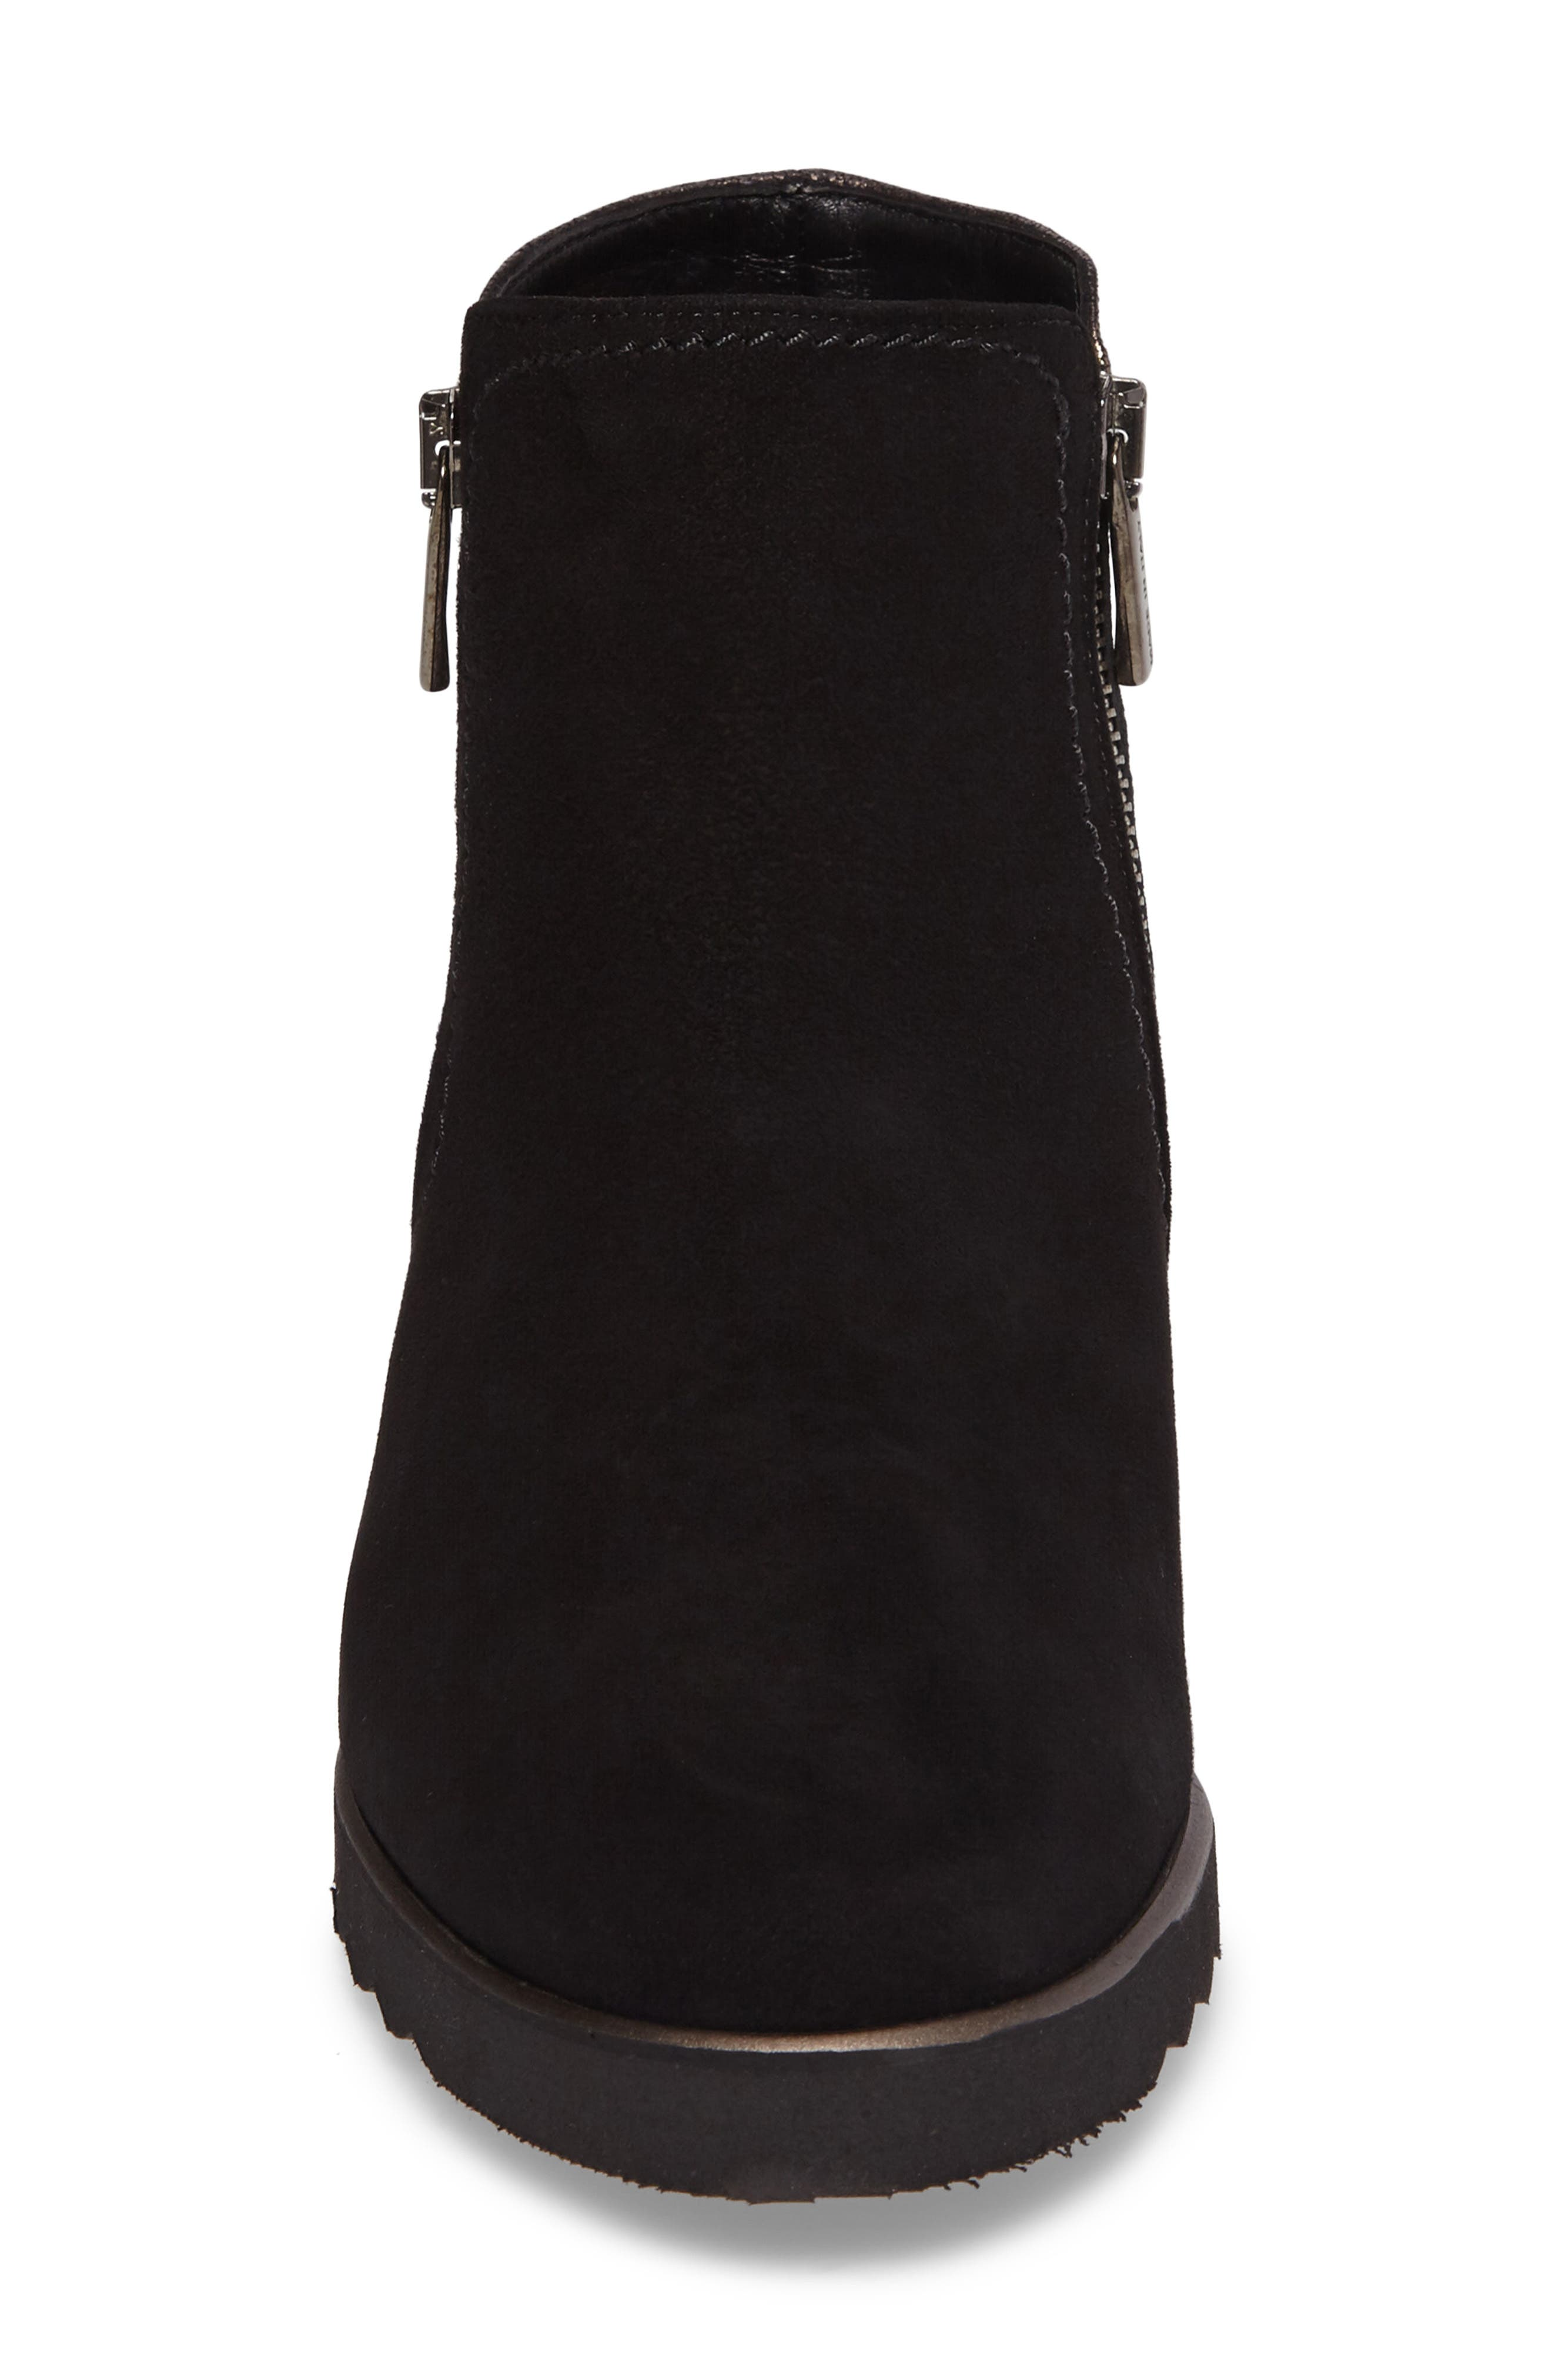 Addie Wedge Bootie,                             Alternate thumbnail 4, color,